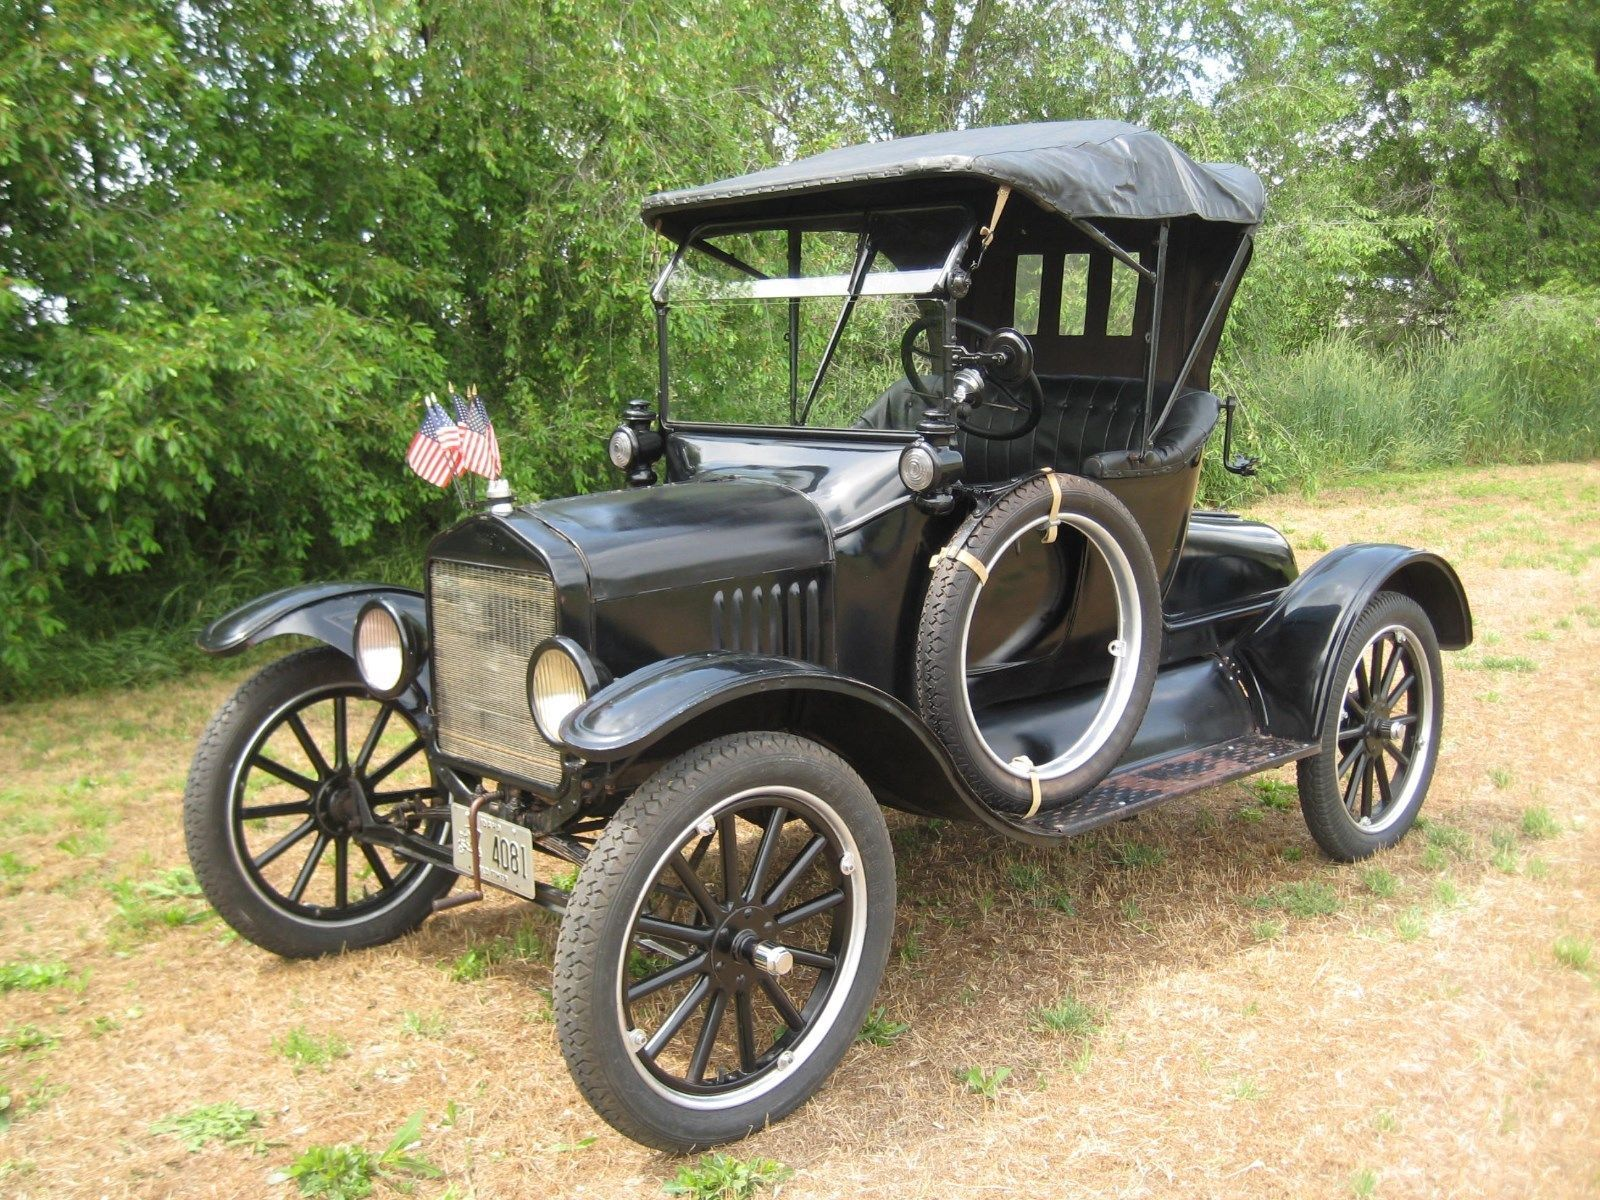 Ebay 1920 Ford Model T Restored Original 1920 Ford Model T